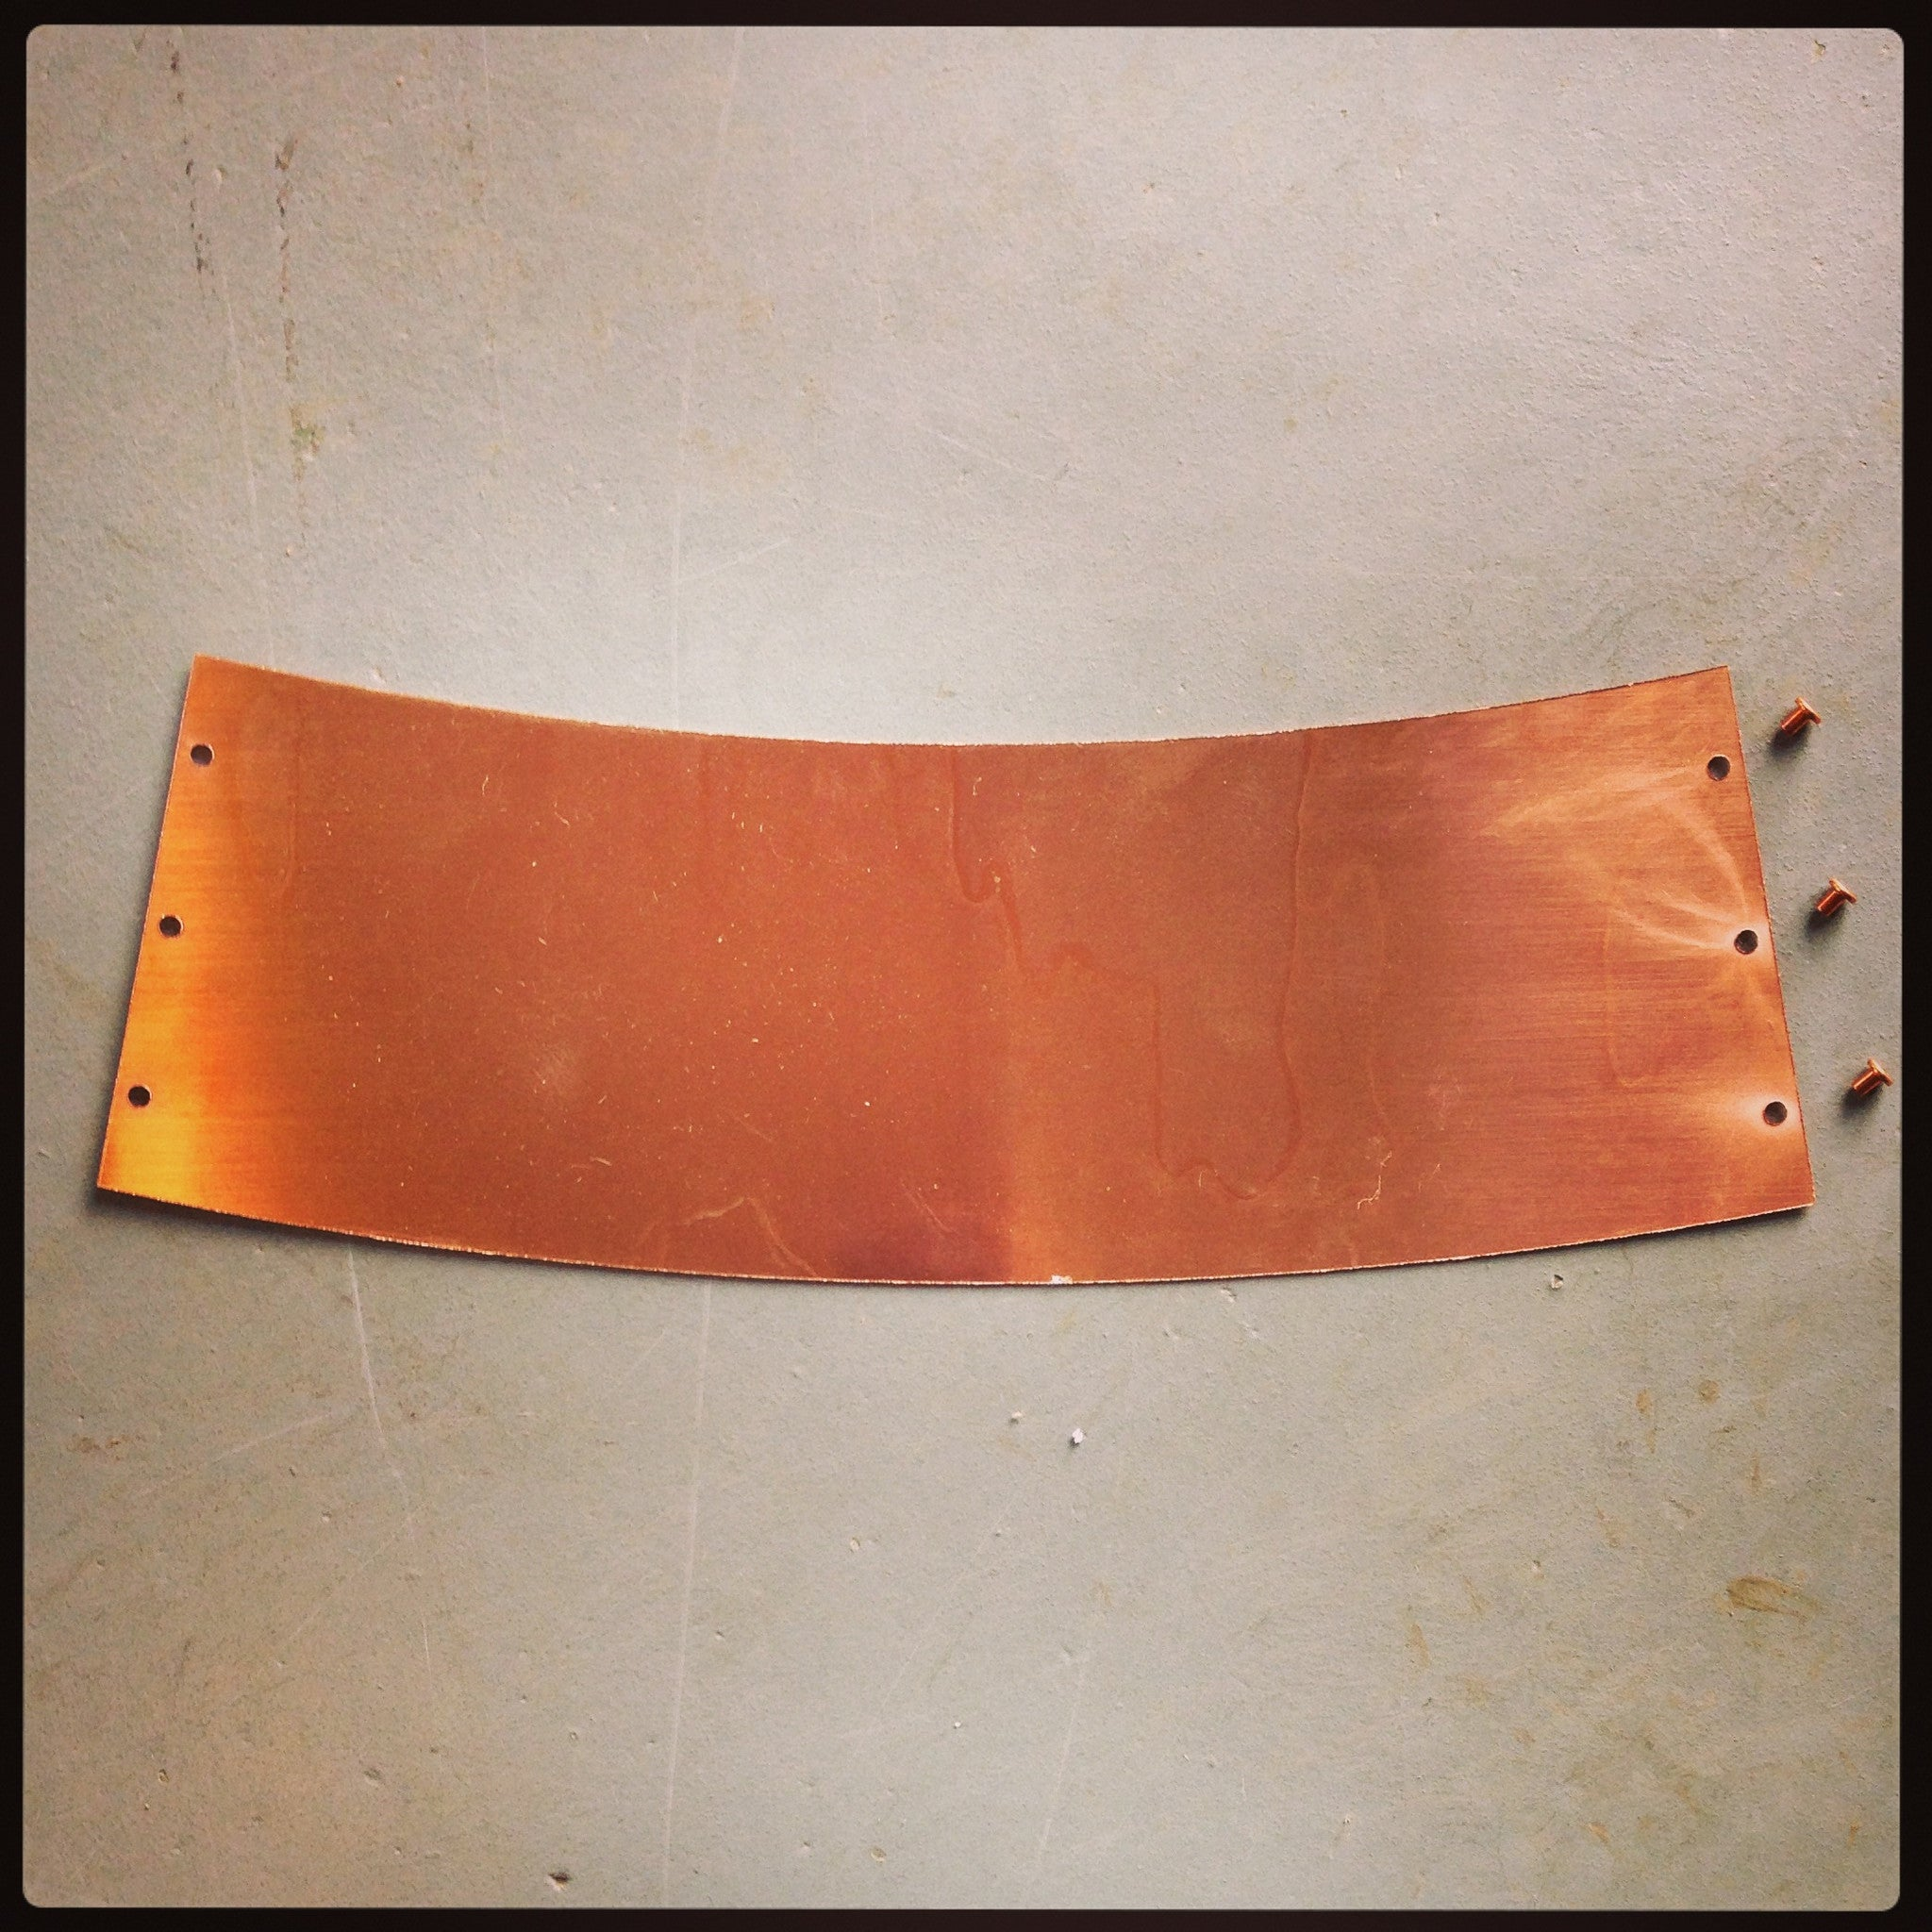 Cap Plate, Cap Skirt, Collar and Rivets - 10 Gallon